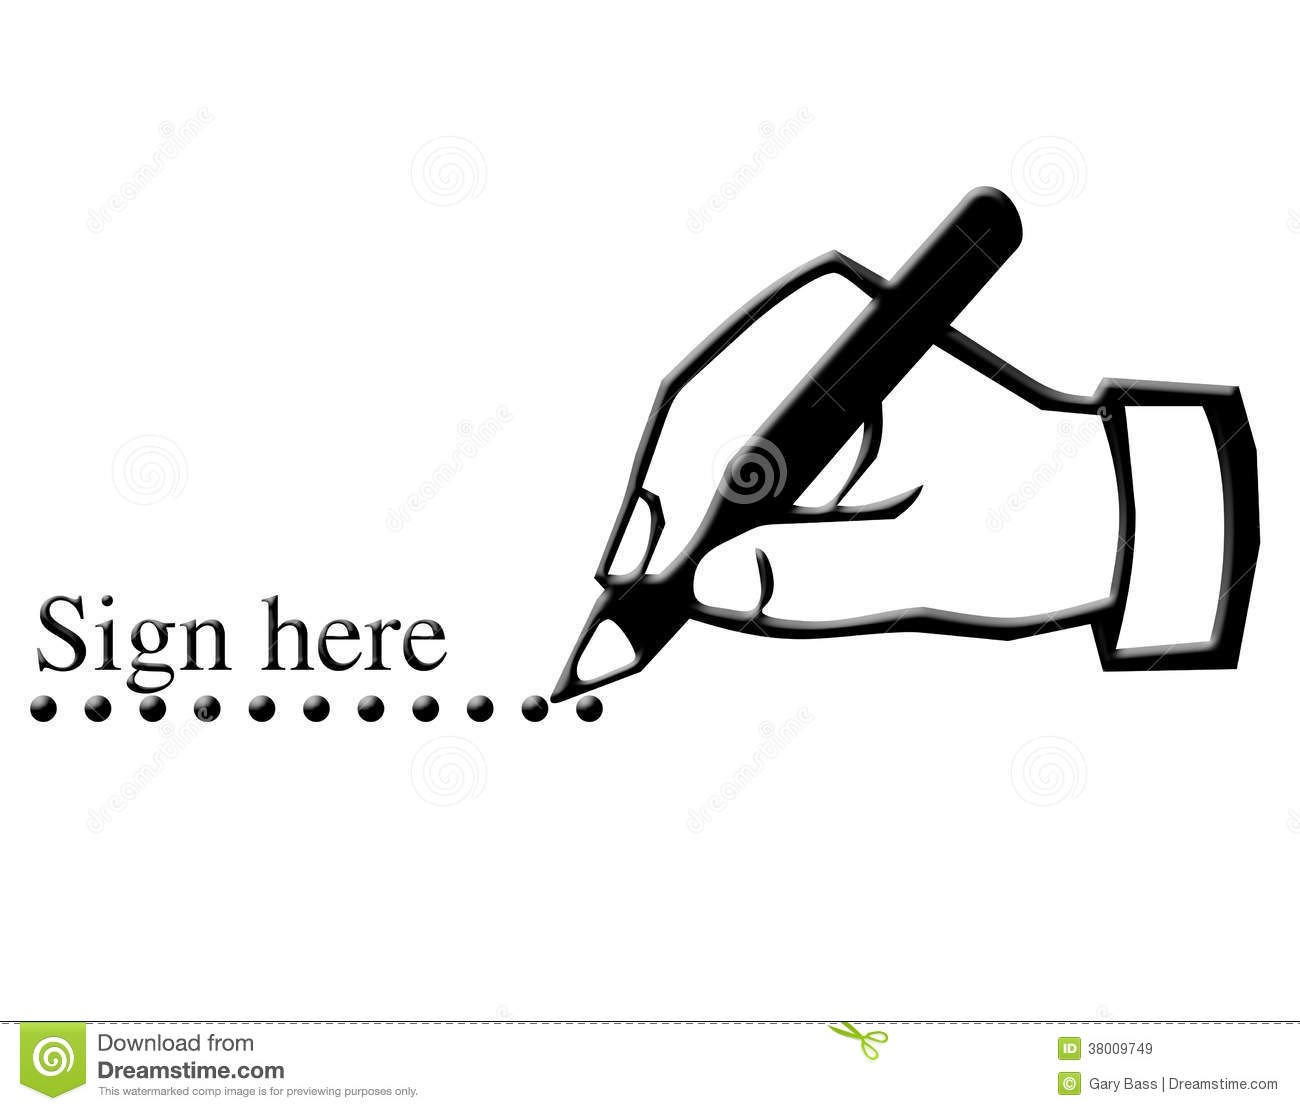 Sign here and hand writing illustration on white background.